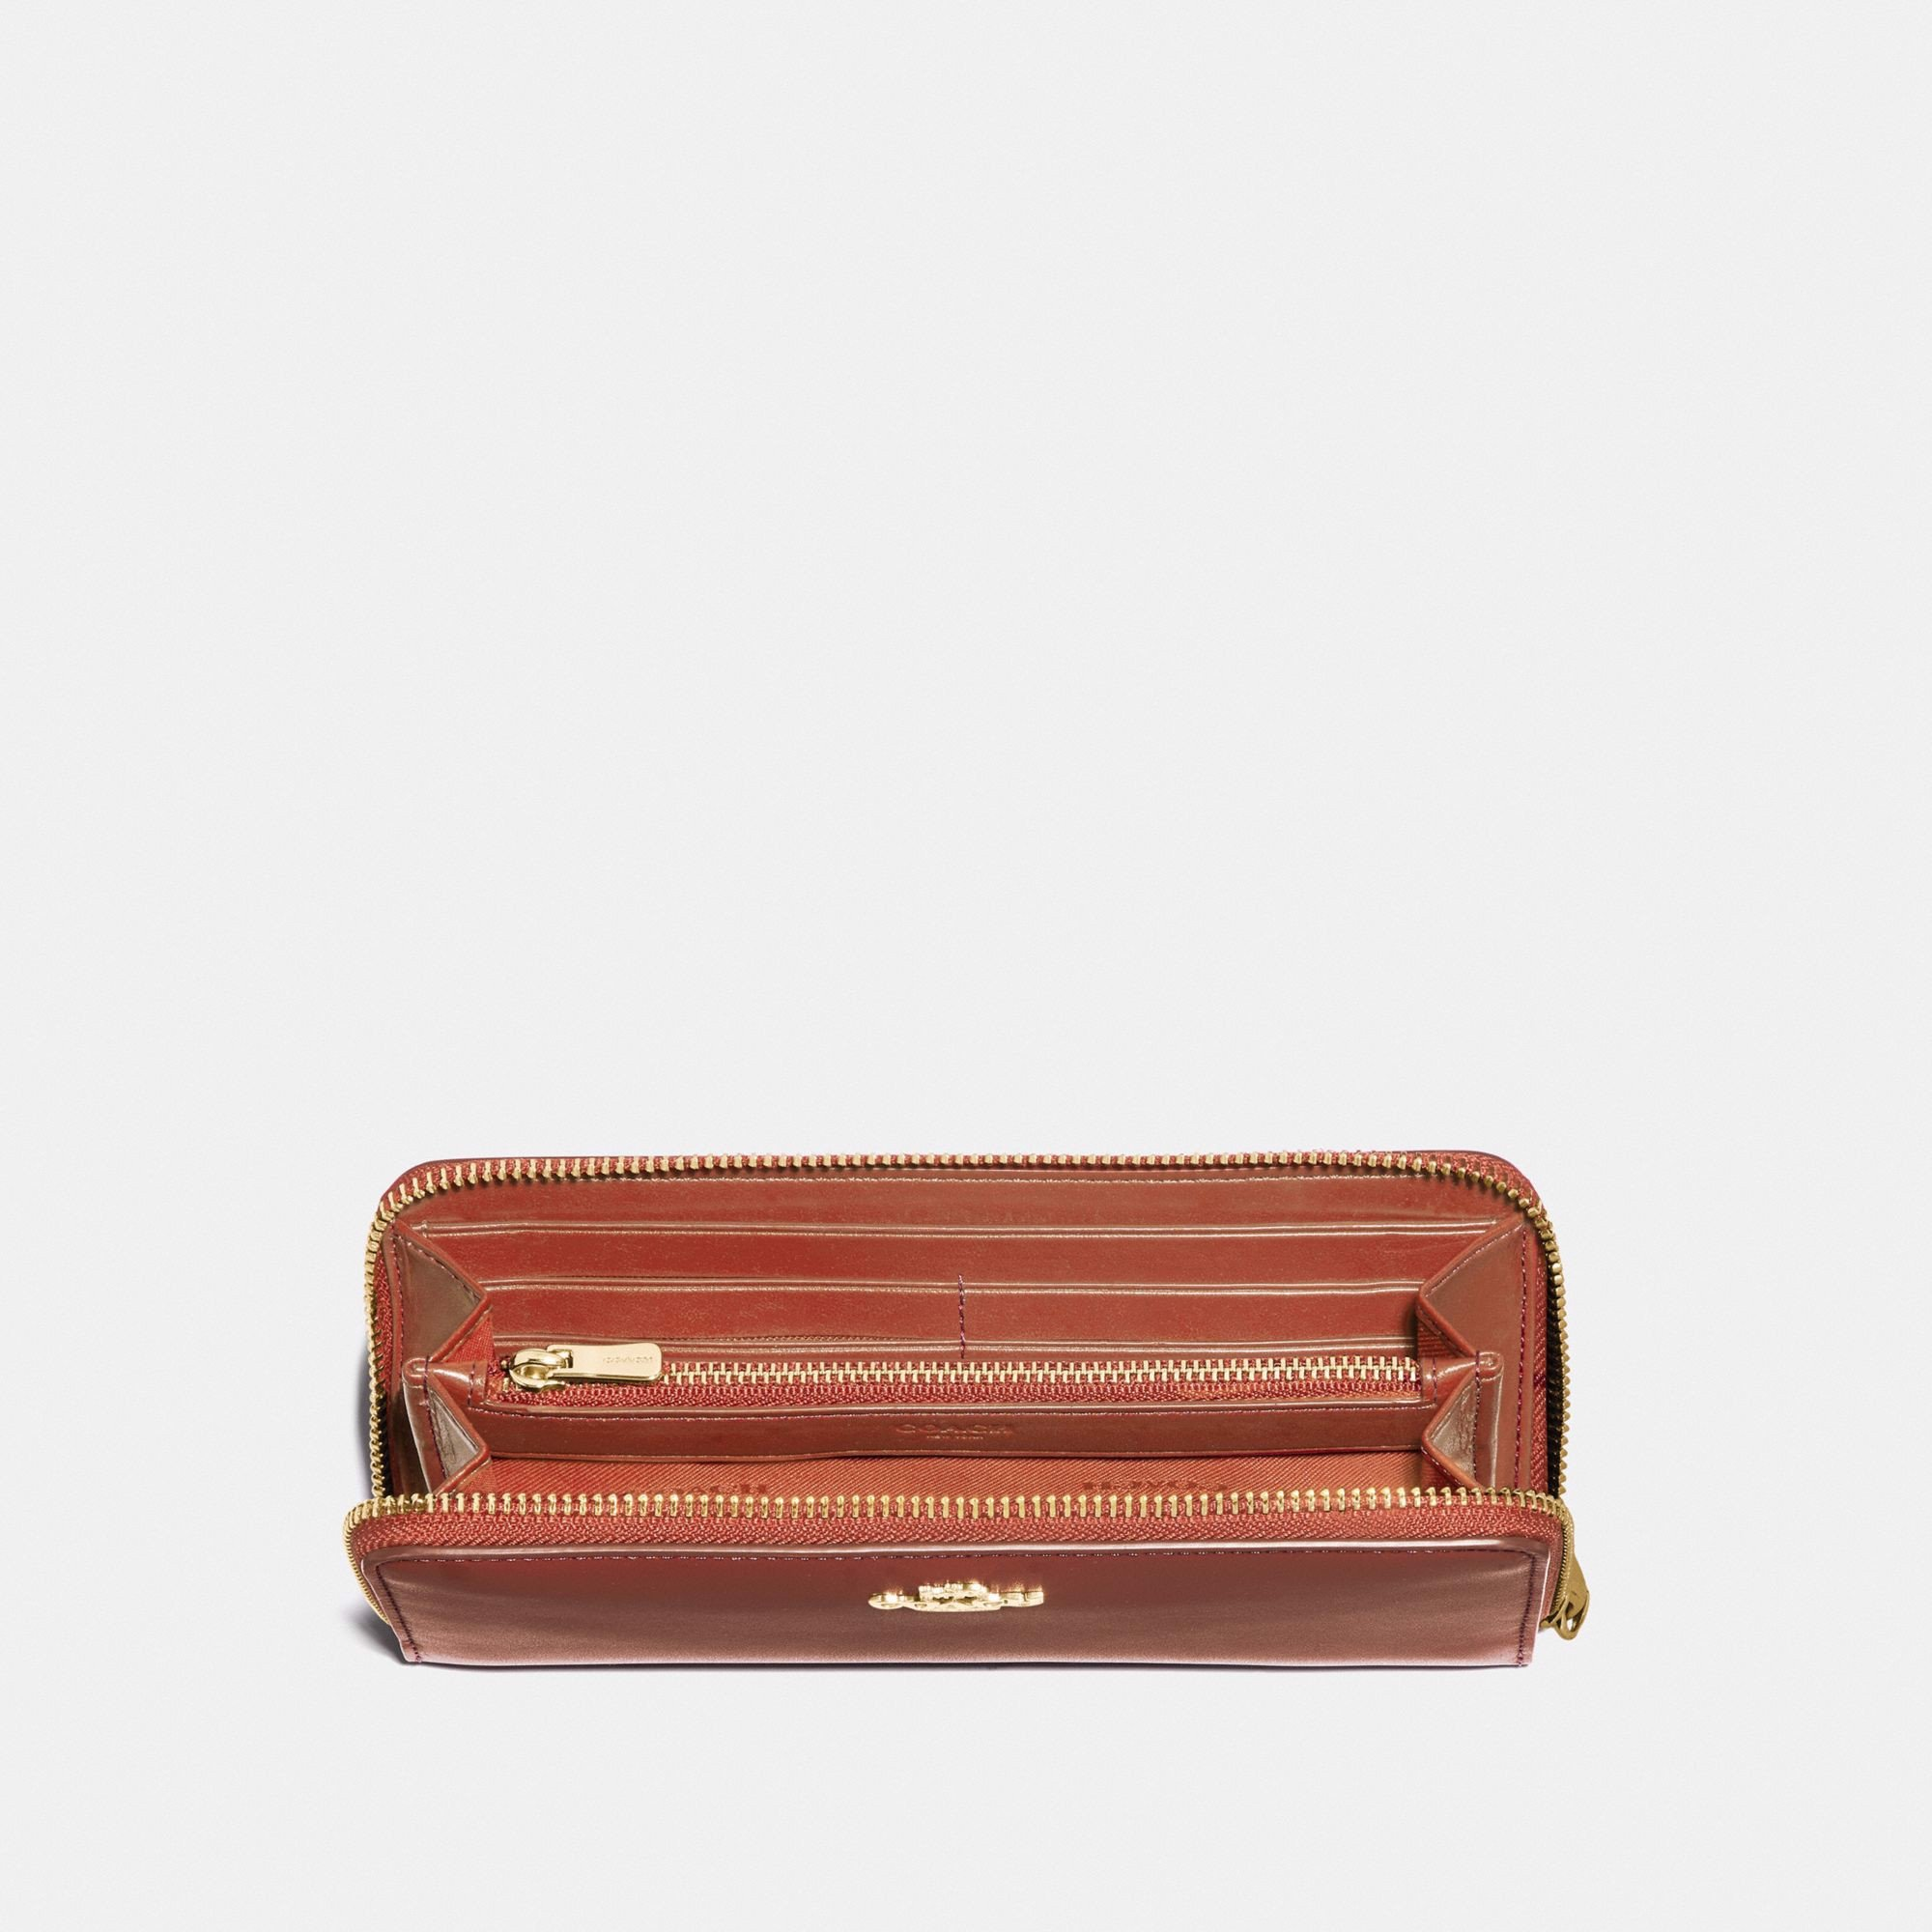 Coach Accordion Zip Wallet In Smooth Leather - Gold/Saddle